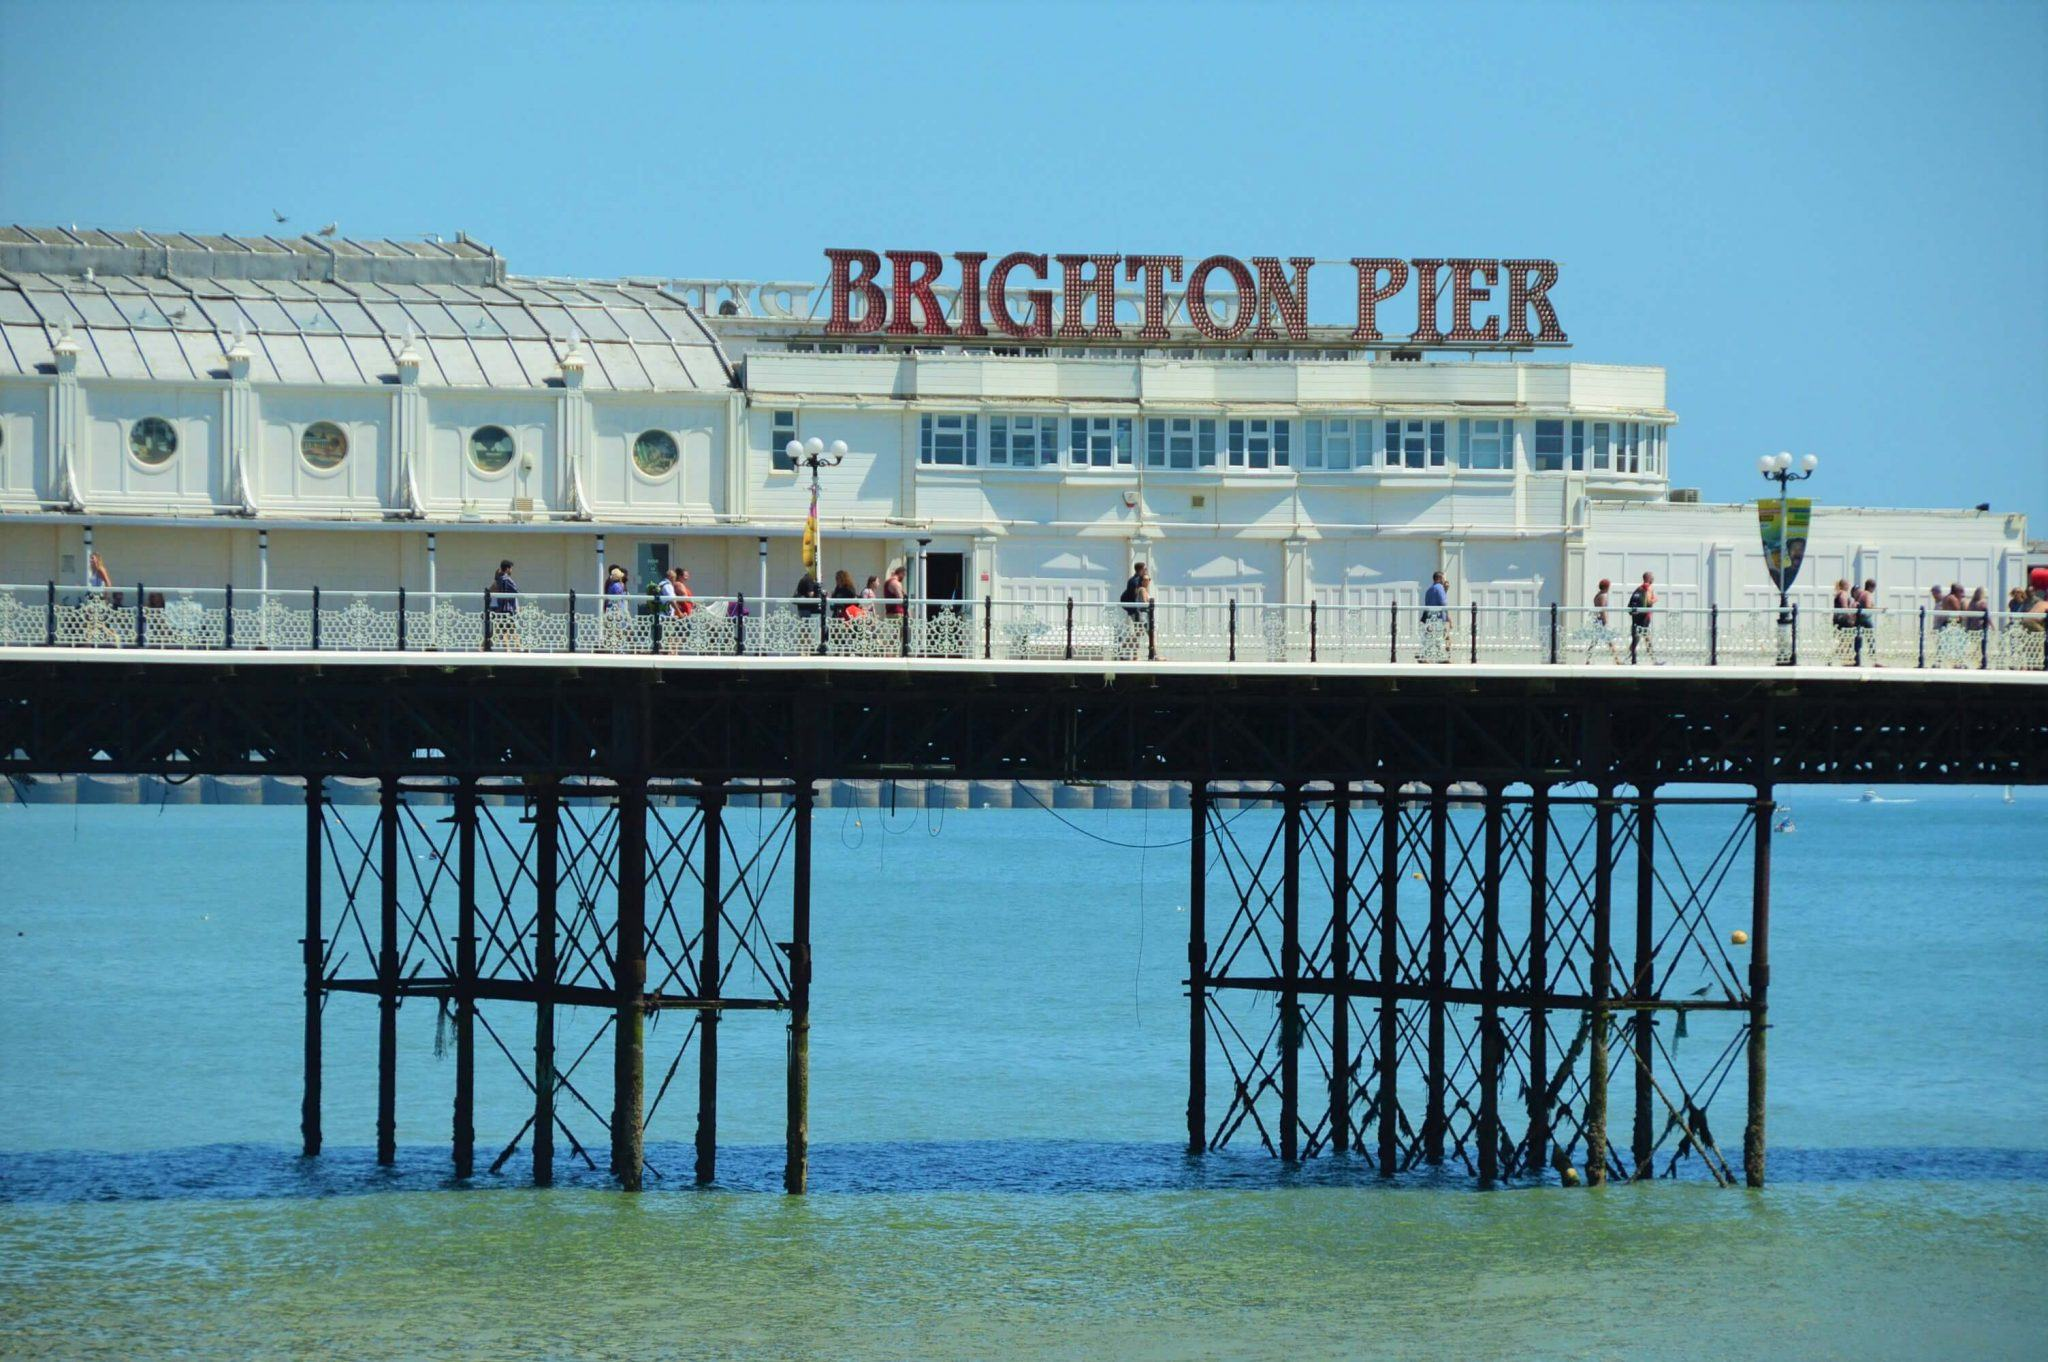 Brighton Pier sign over the water